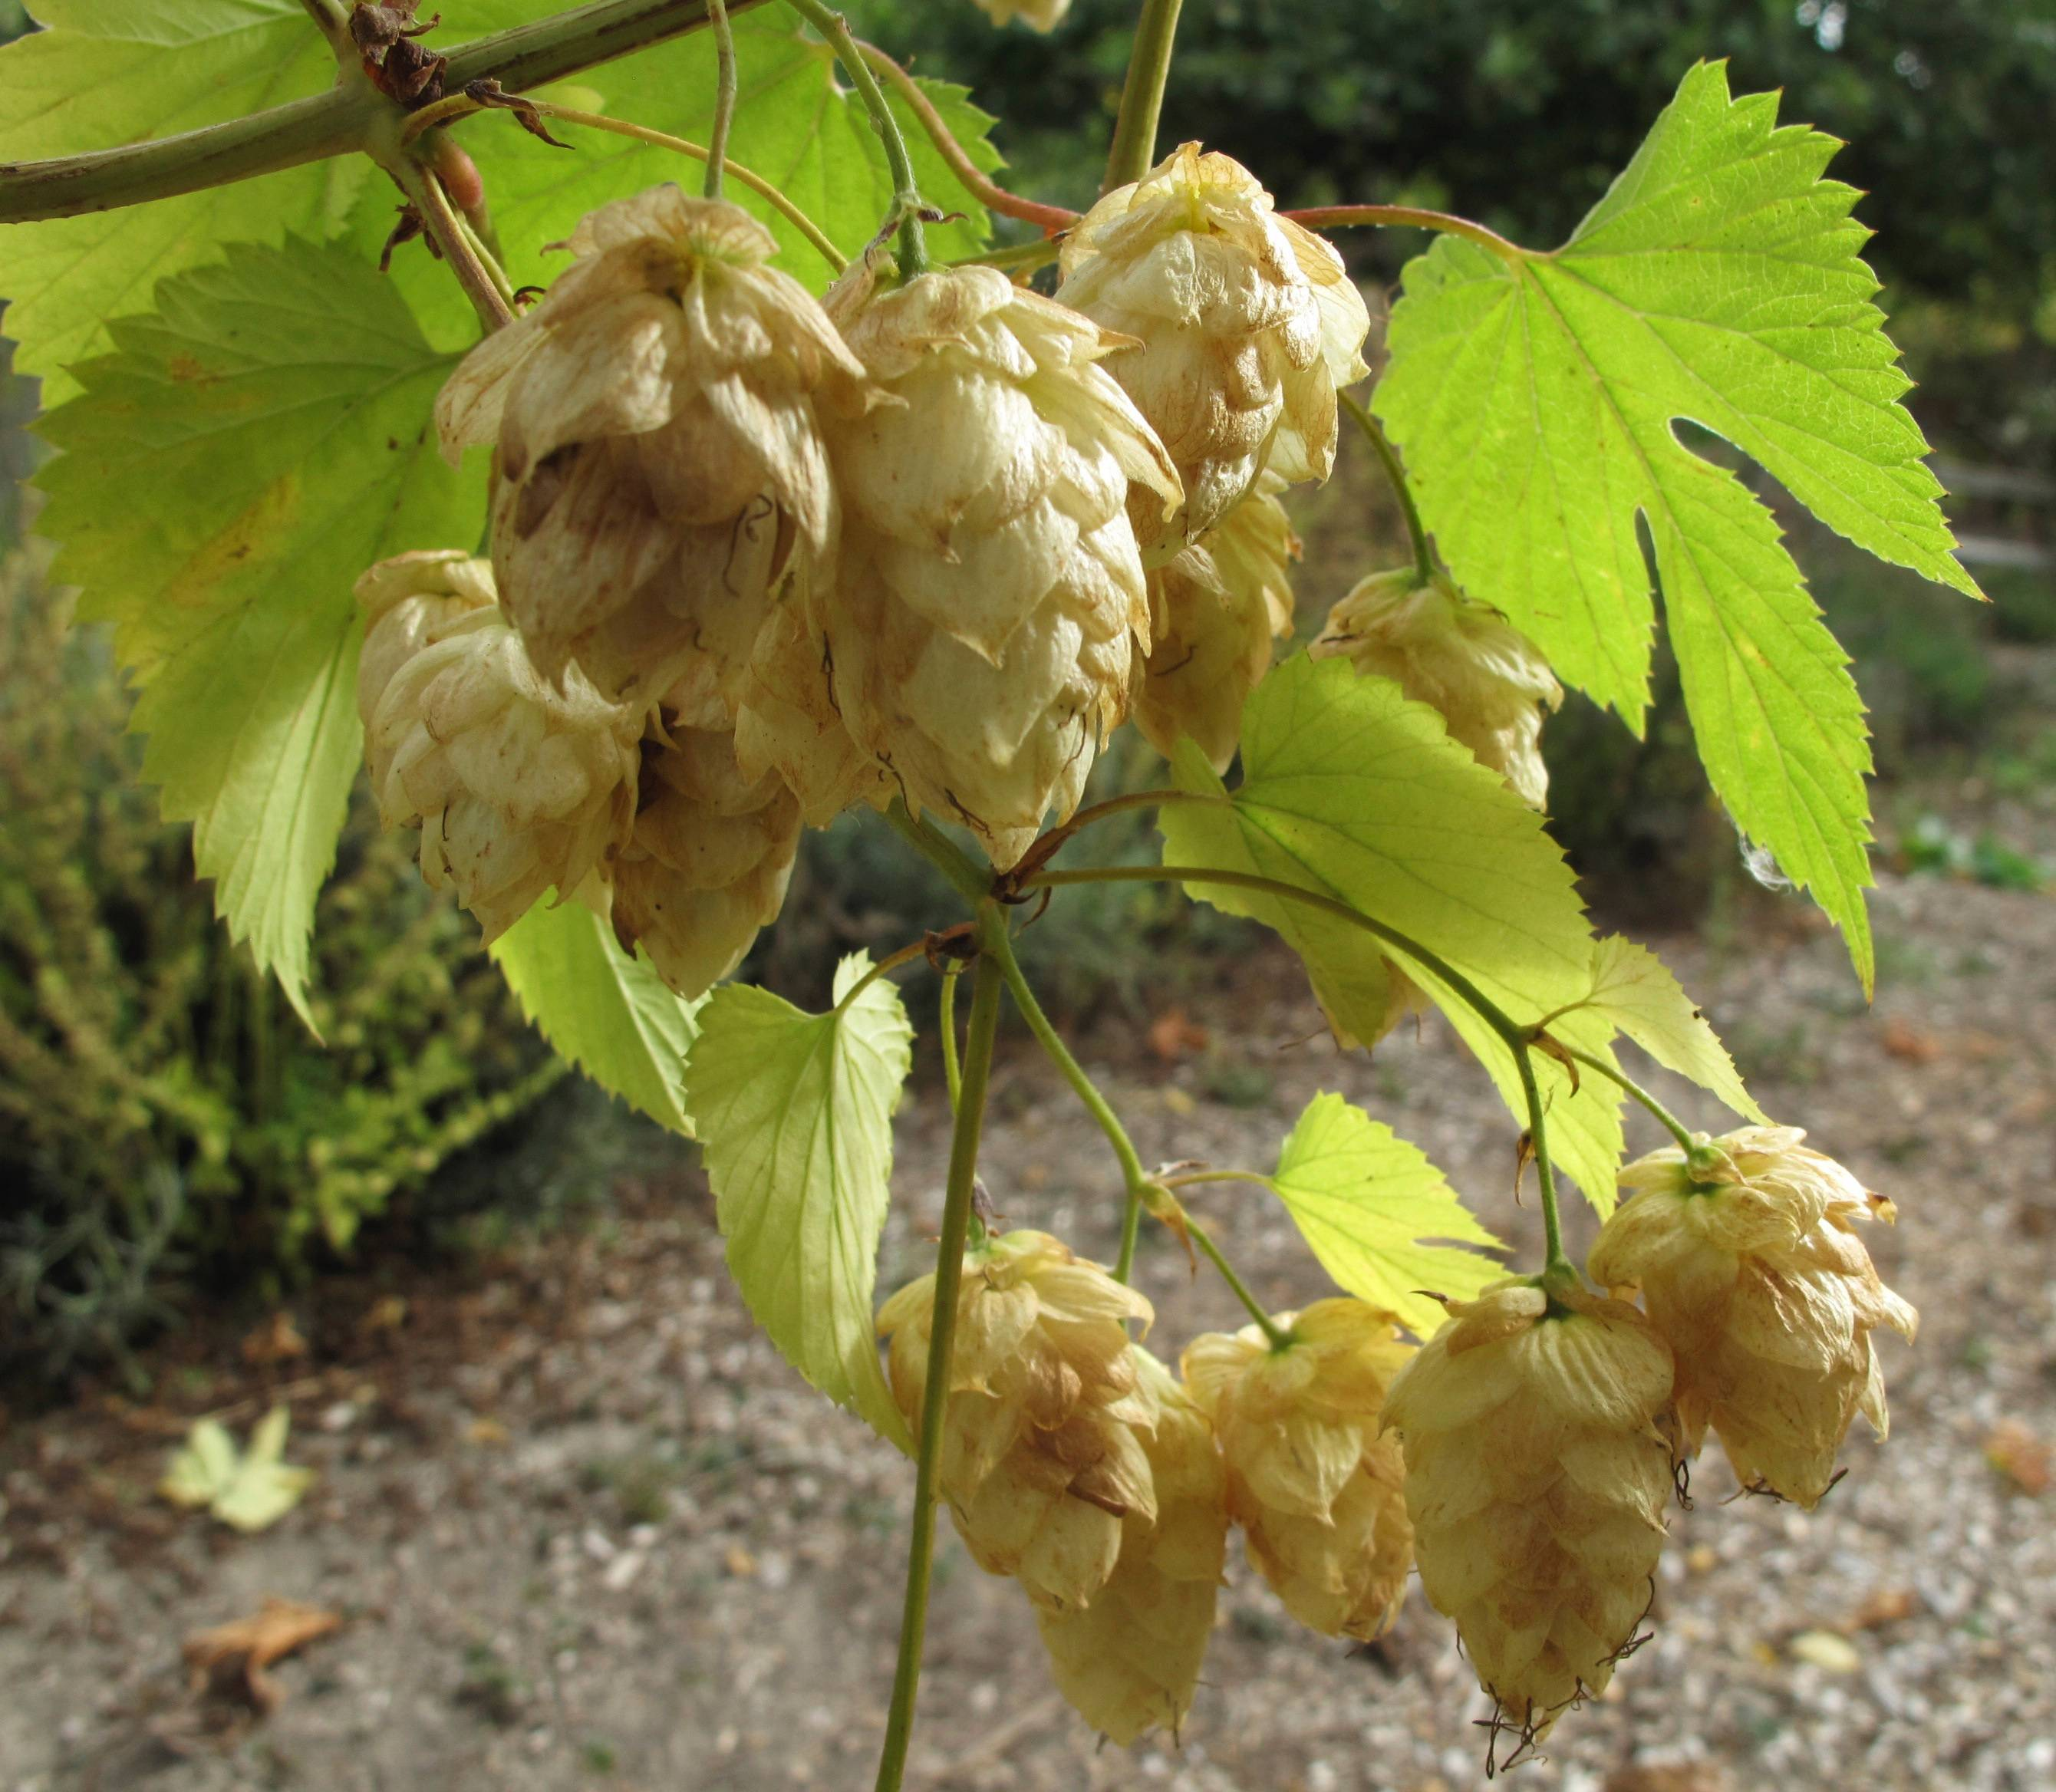 Hop flowers can be both ornamental and edible. Hops are an easy-to-grow perennial that greatly enhance a beer's flavor when picked fresh.